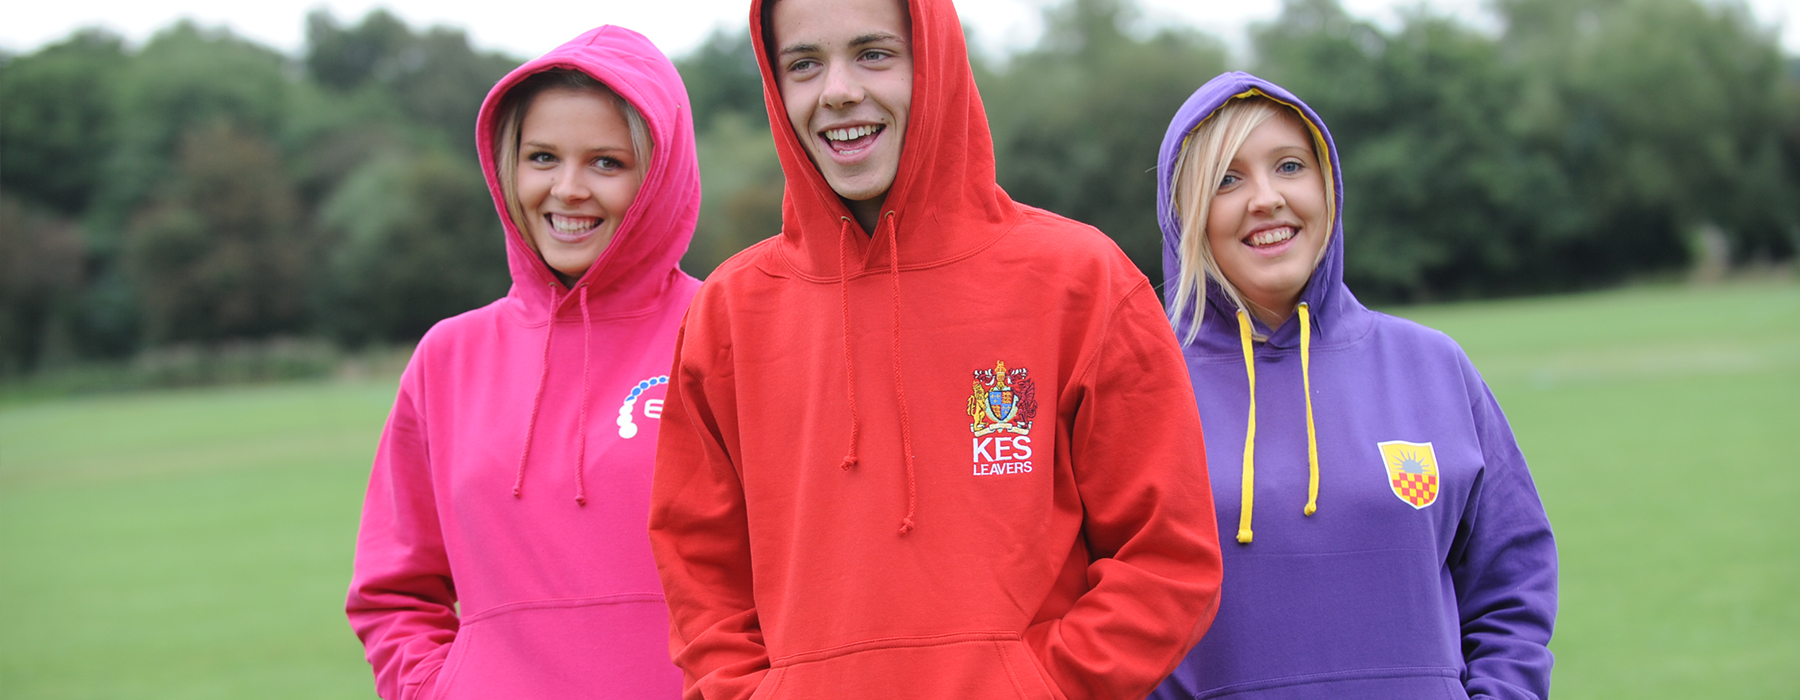 school leaver hoodies